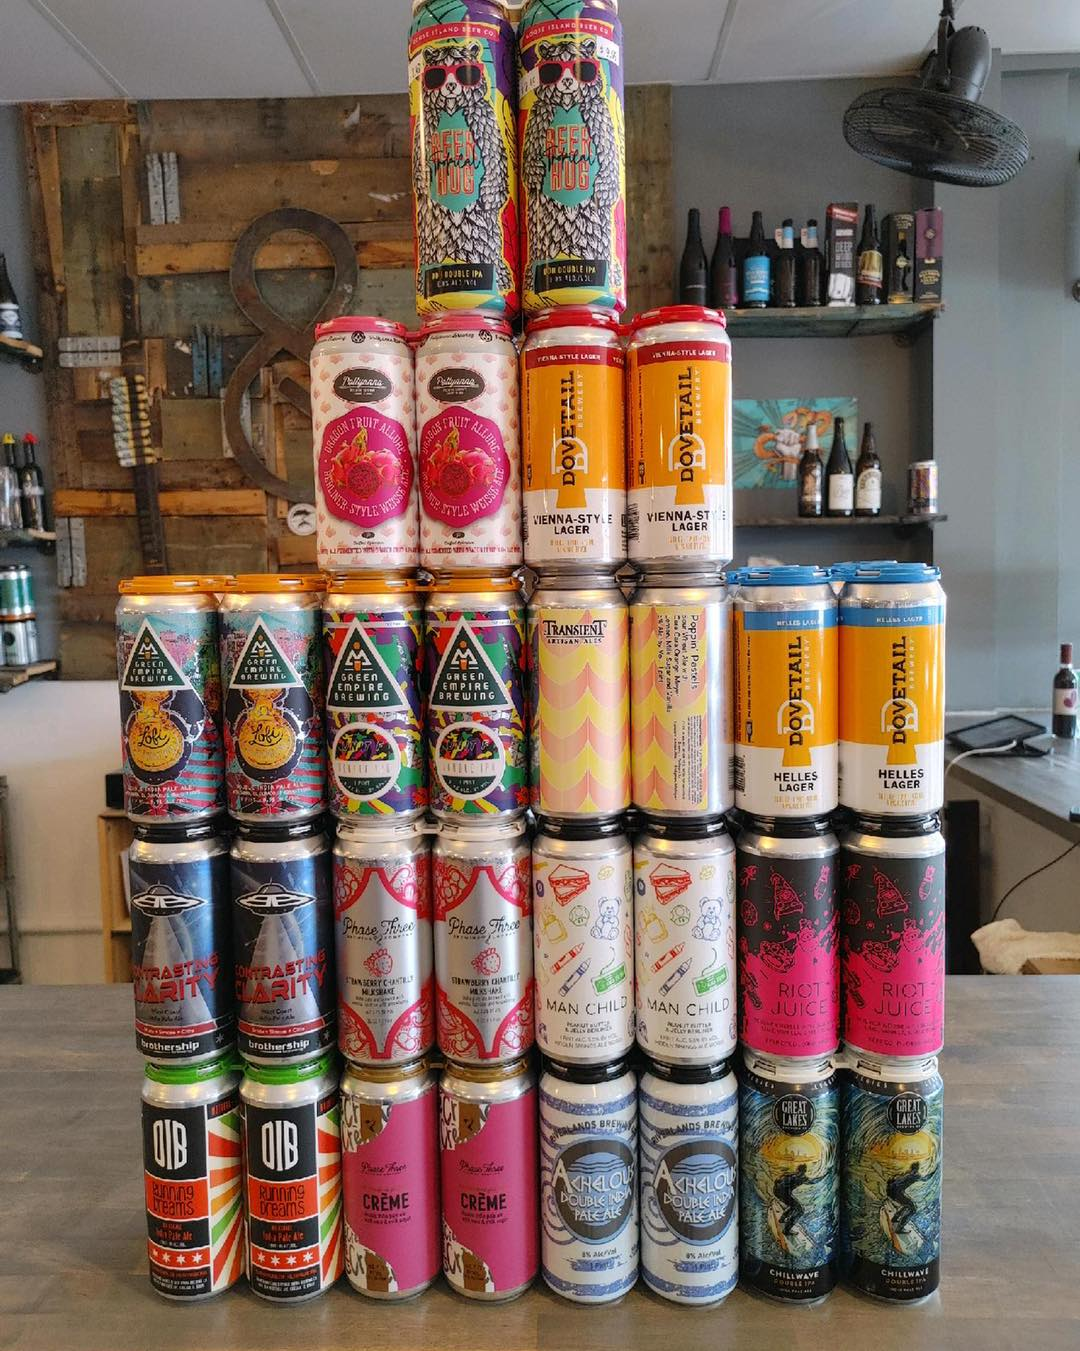 Tower of beer cans